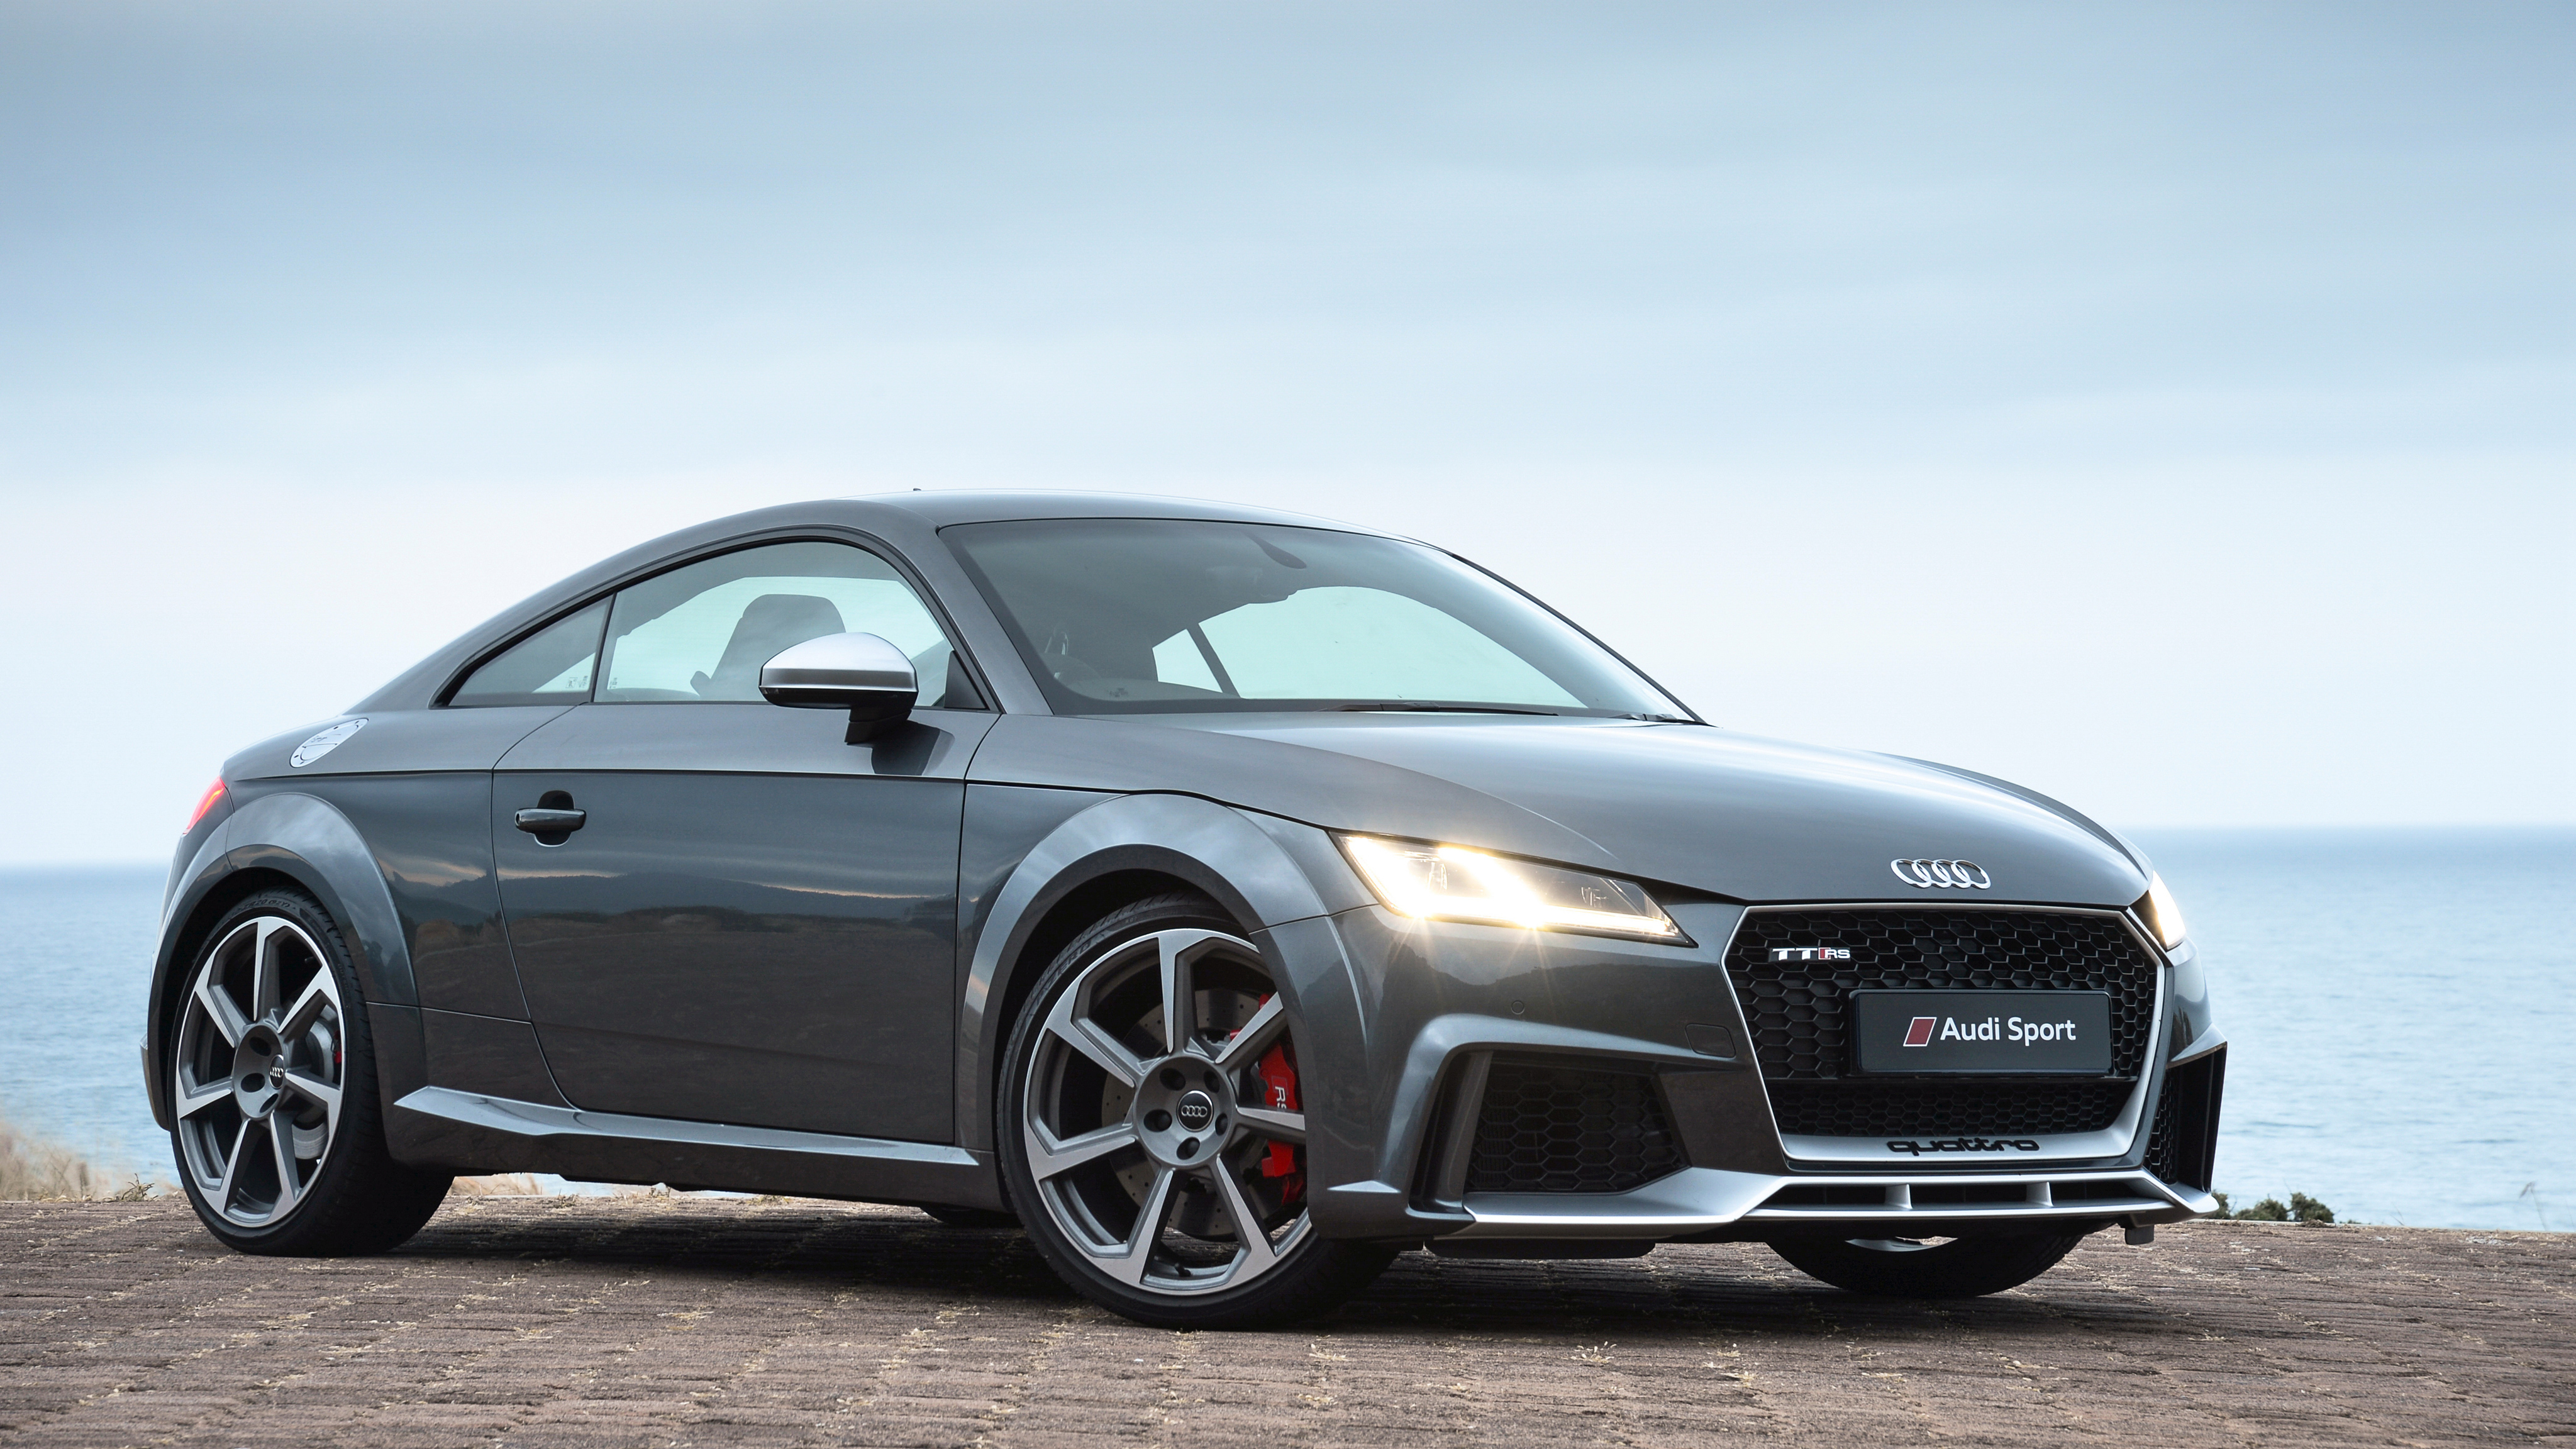 Audi TT RS Coupe modern 2019